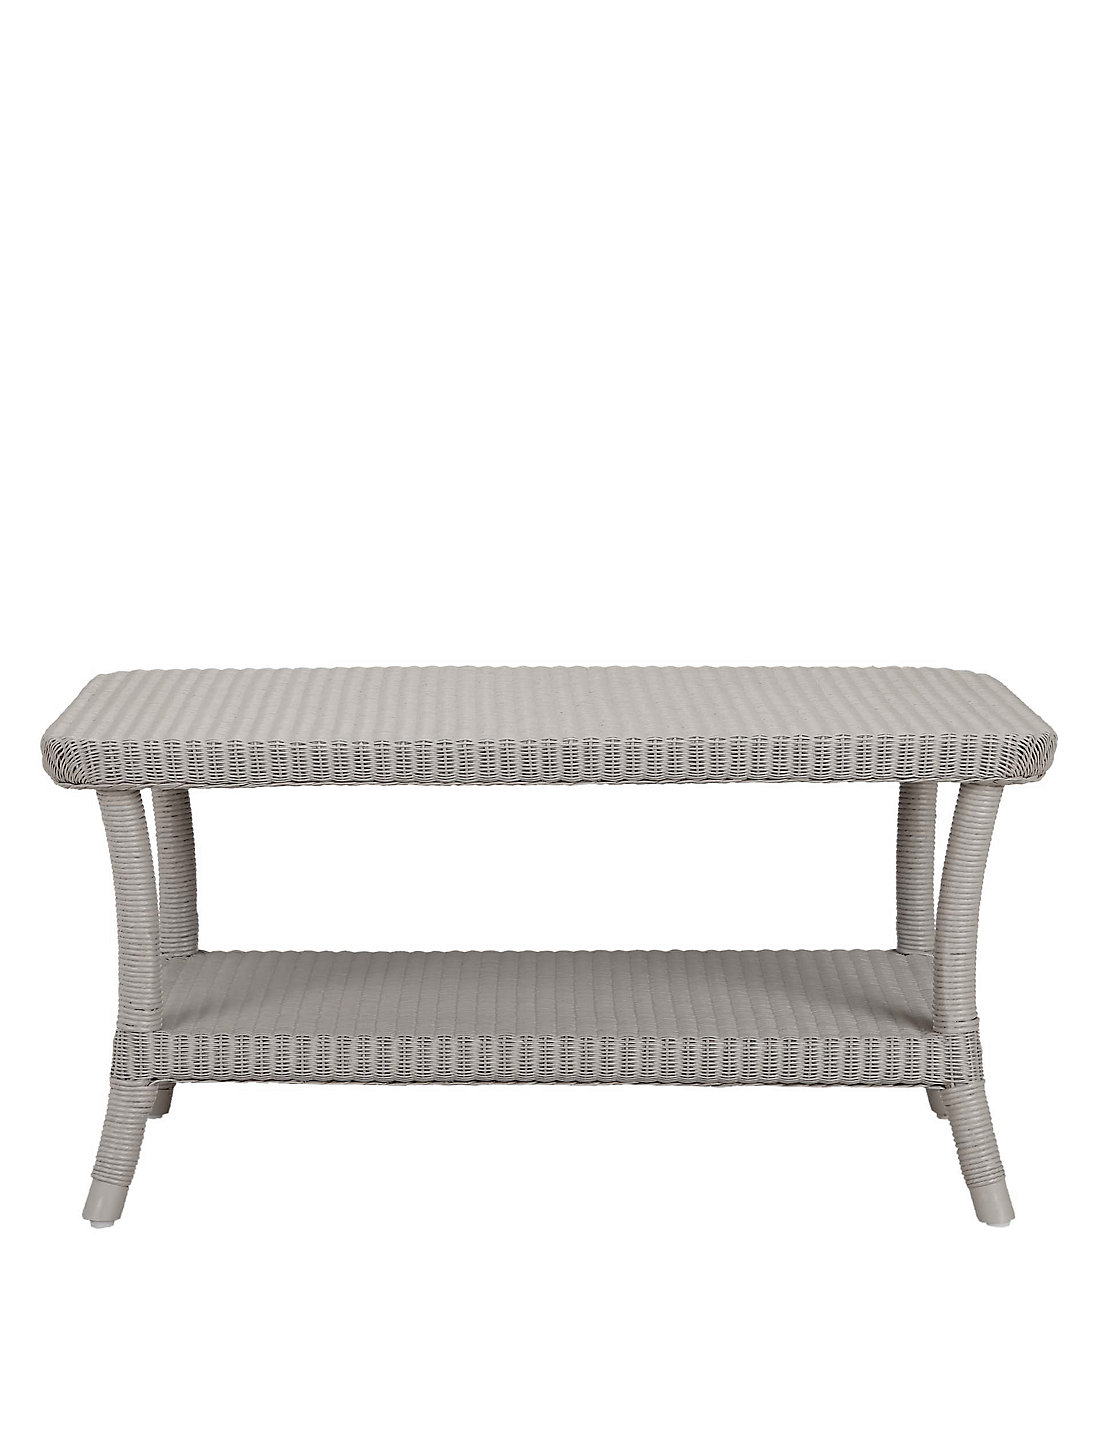 Worthing Coffee Table   Grey. Garden Table   Chairs   Wooden Outdoor Seating Sets   M S